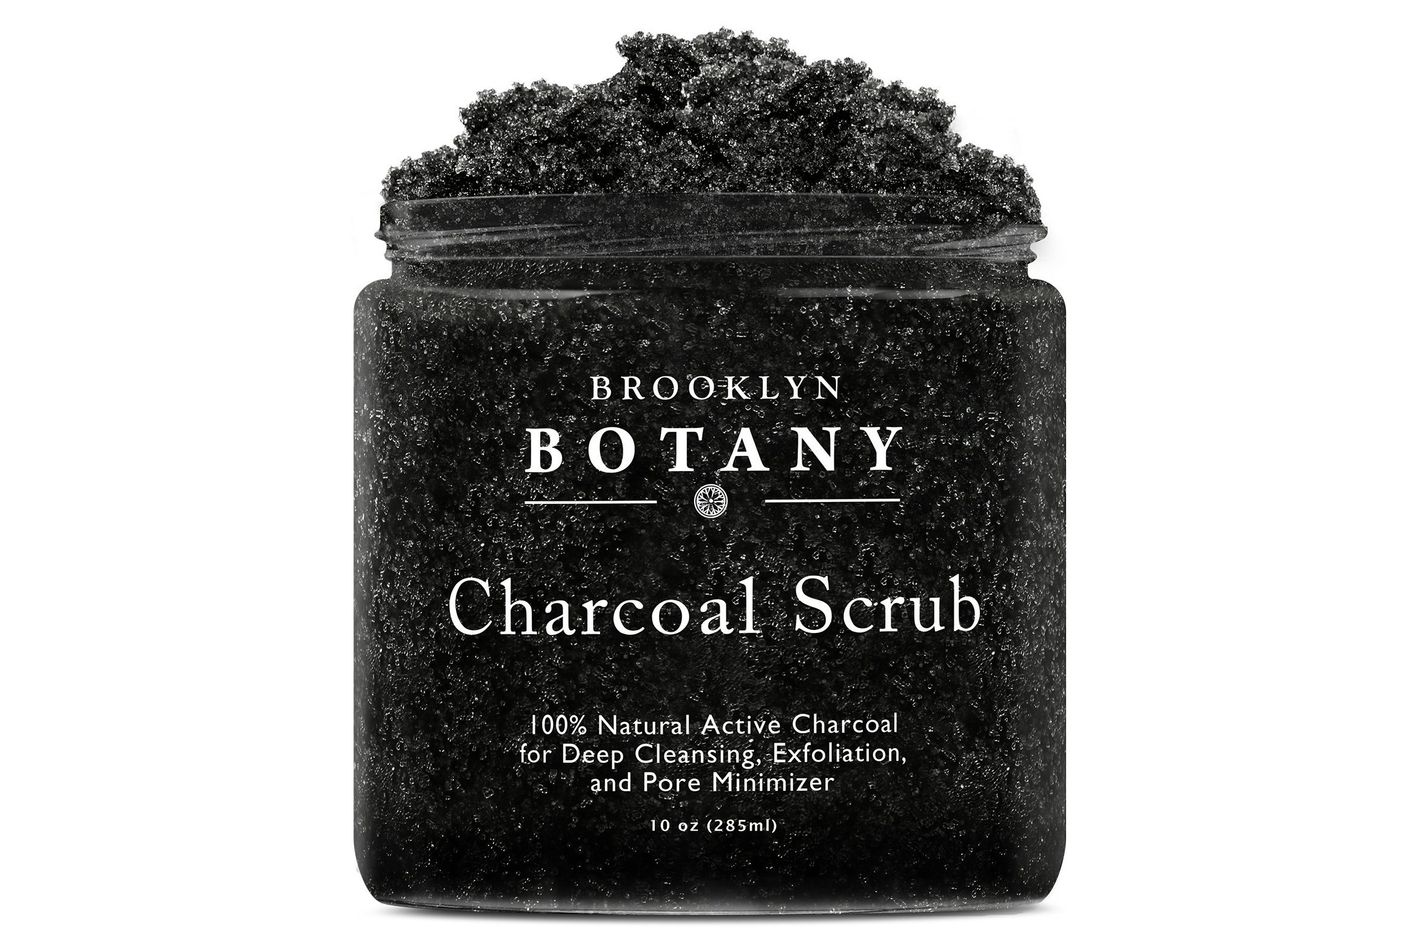 Brooklyn Botany Charcoal Scrub